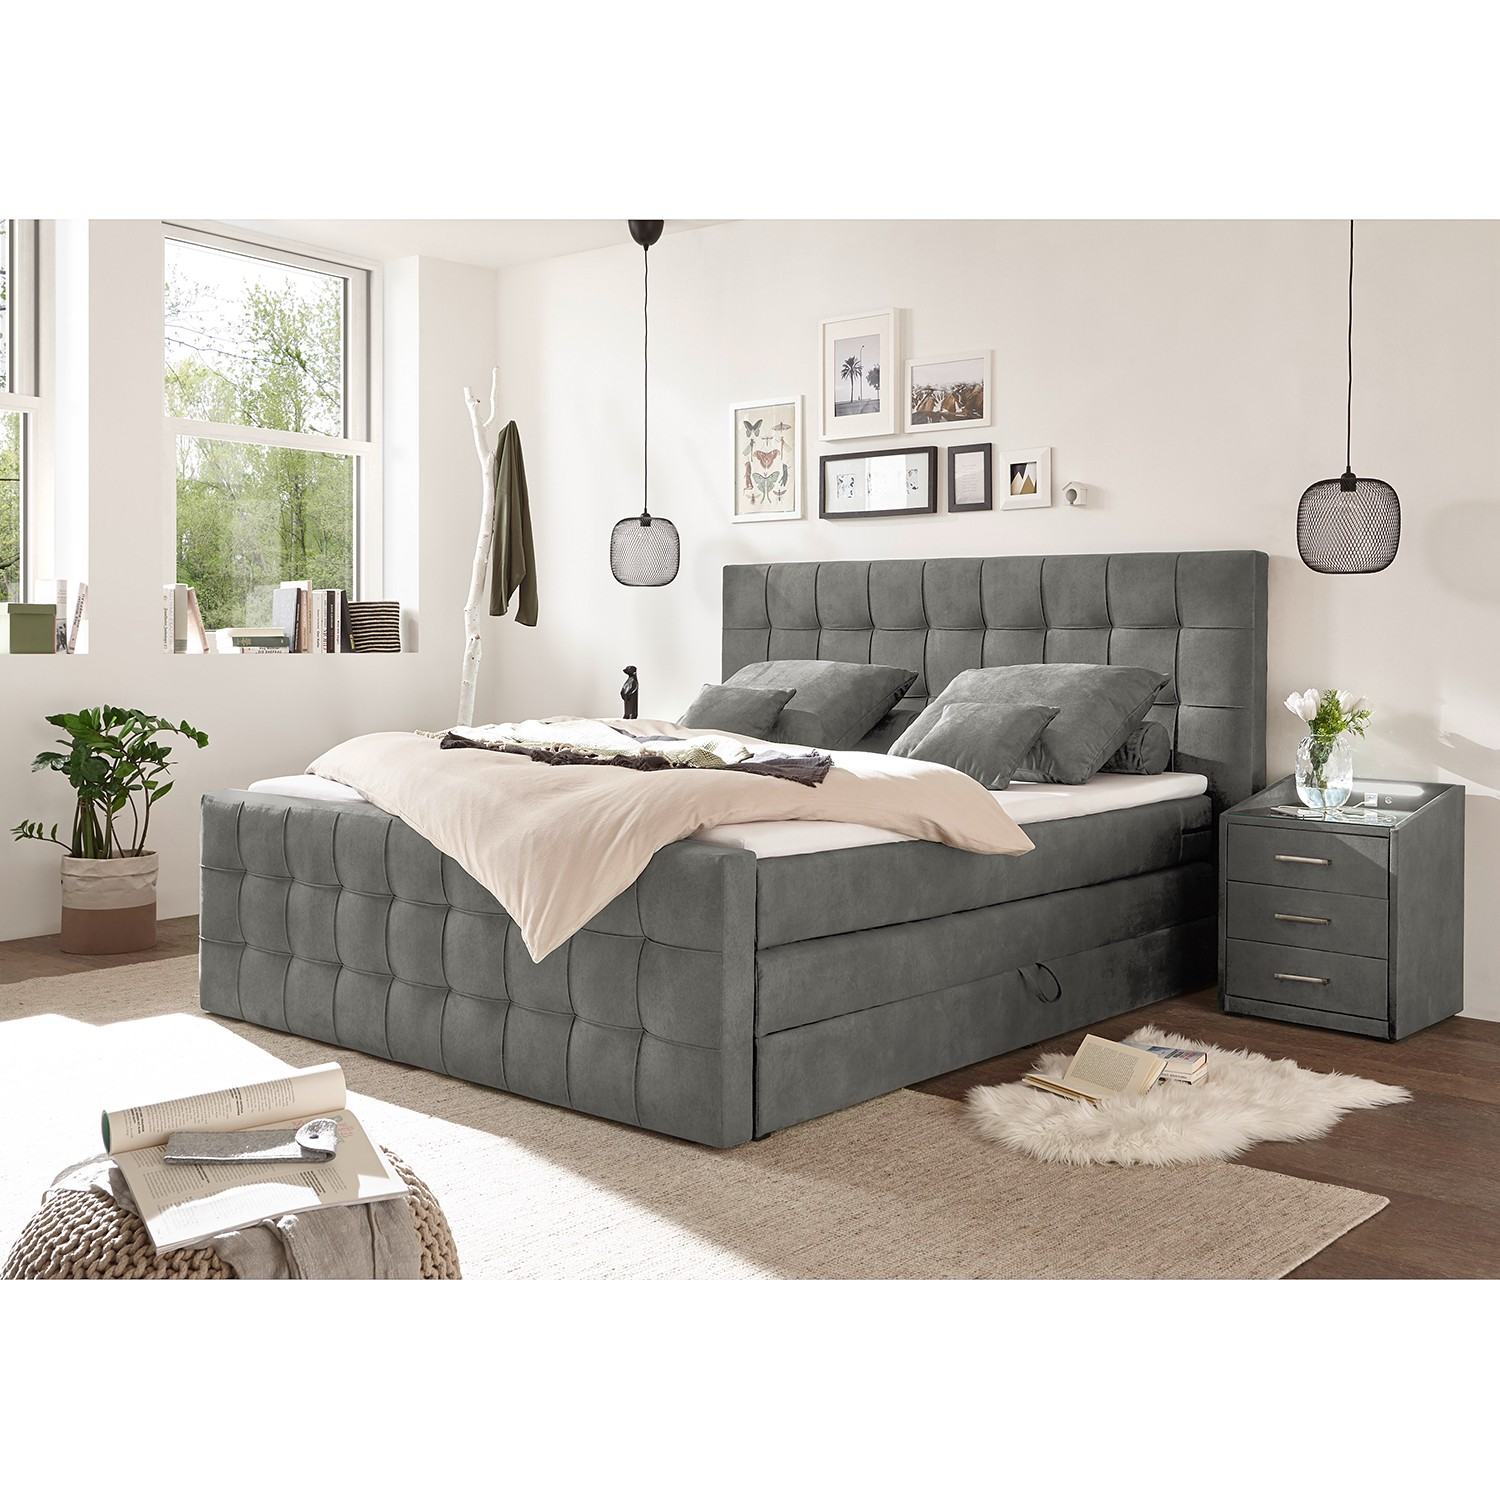 *Boxspringbett Bellwood 180×200 cm Anthrazit mit Bettkasten LOFTSCAPE*